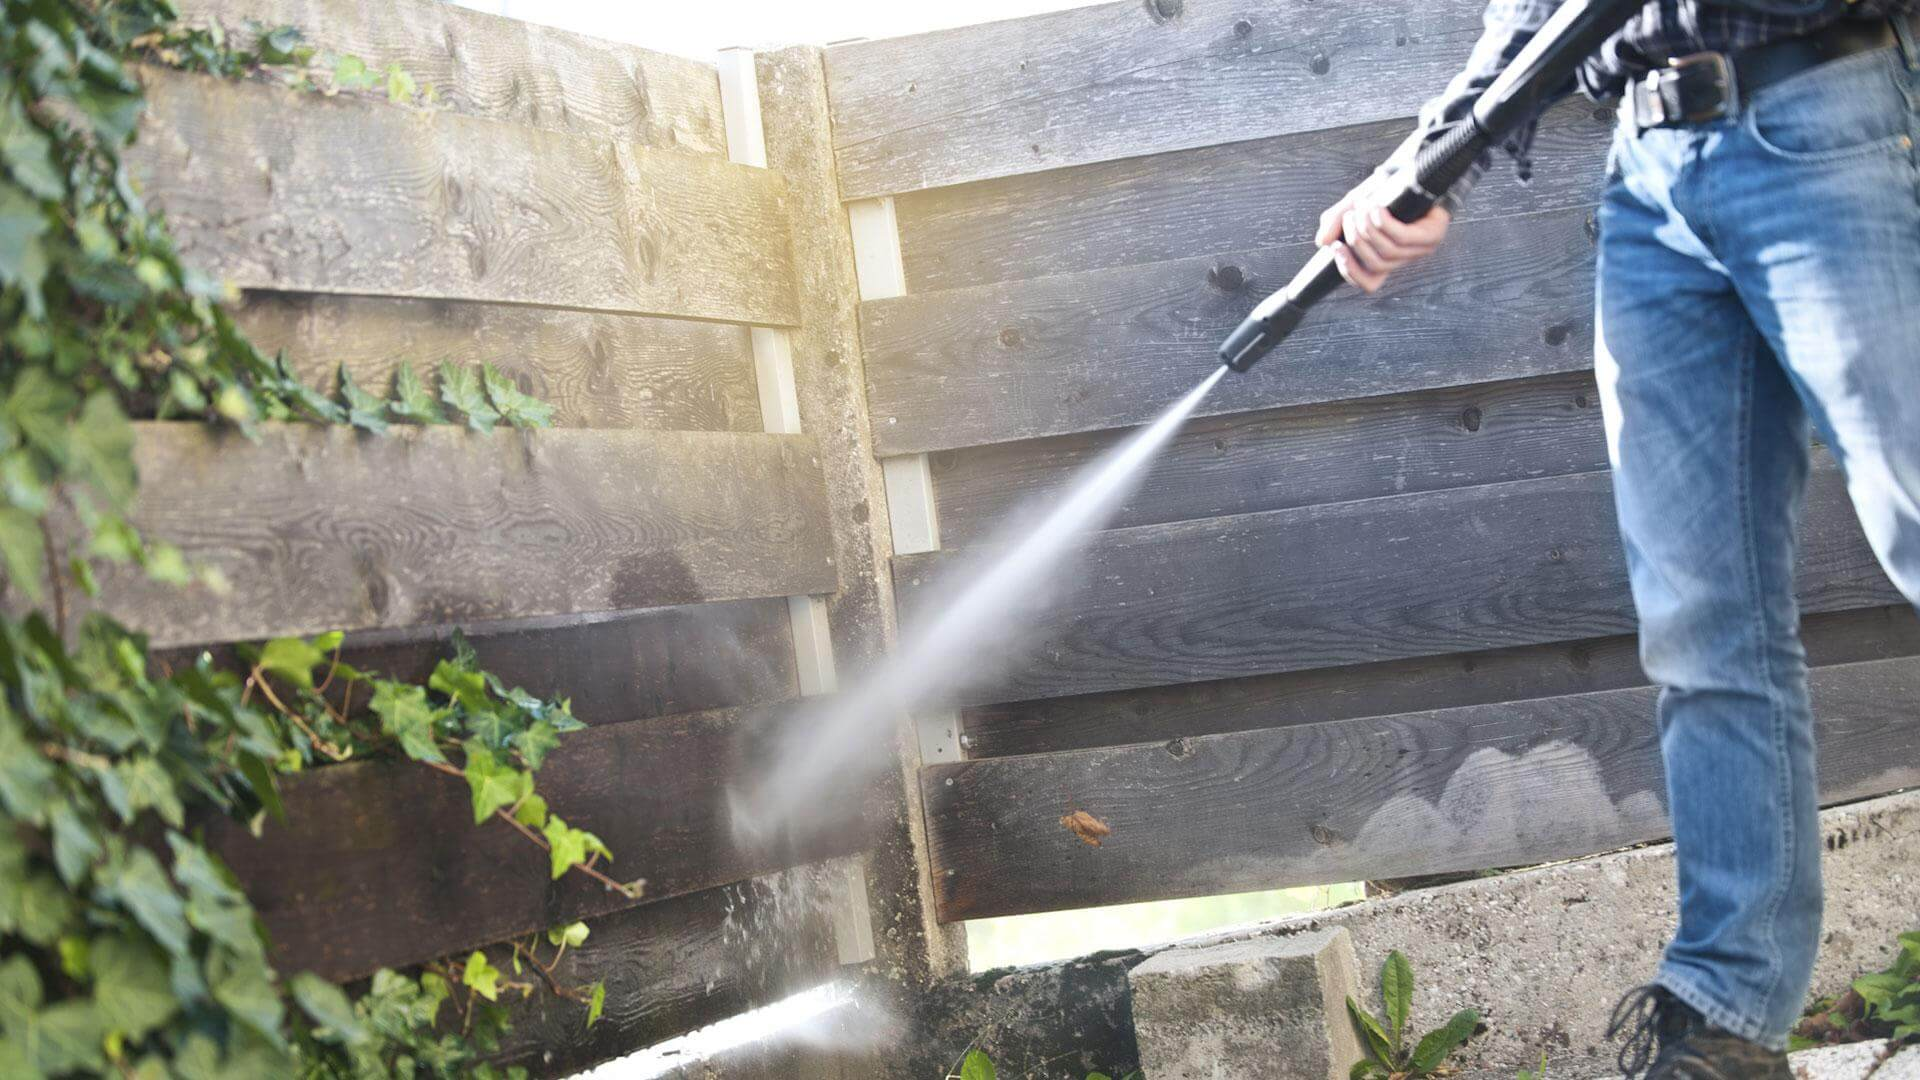 Power washing should only take place outdoors